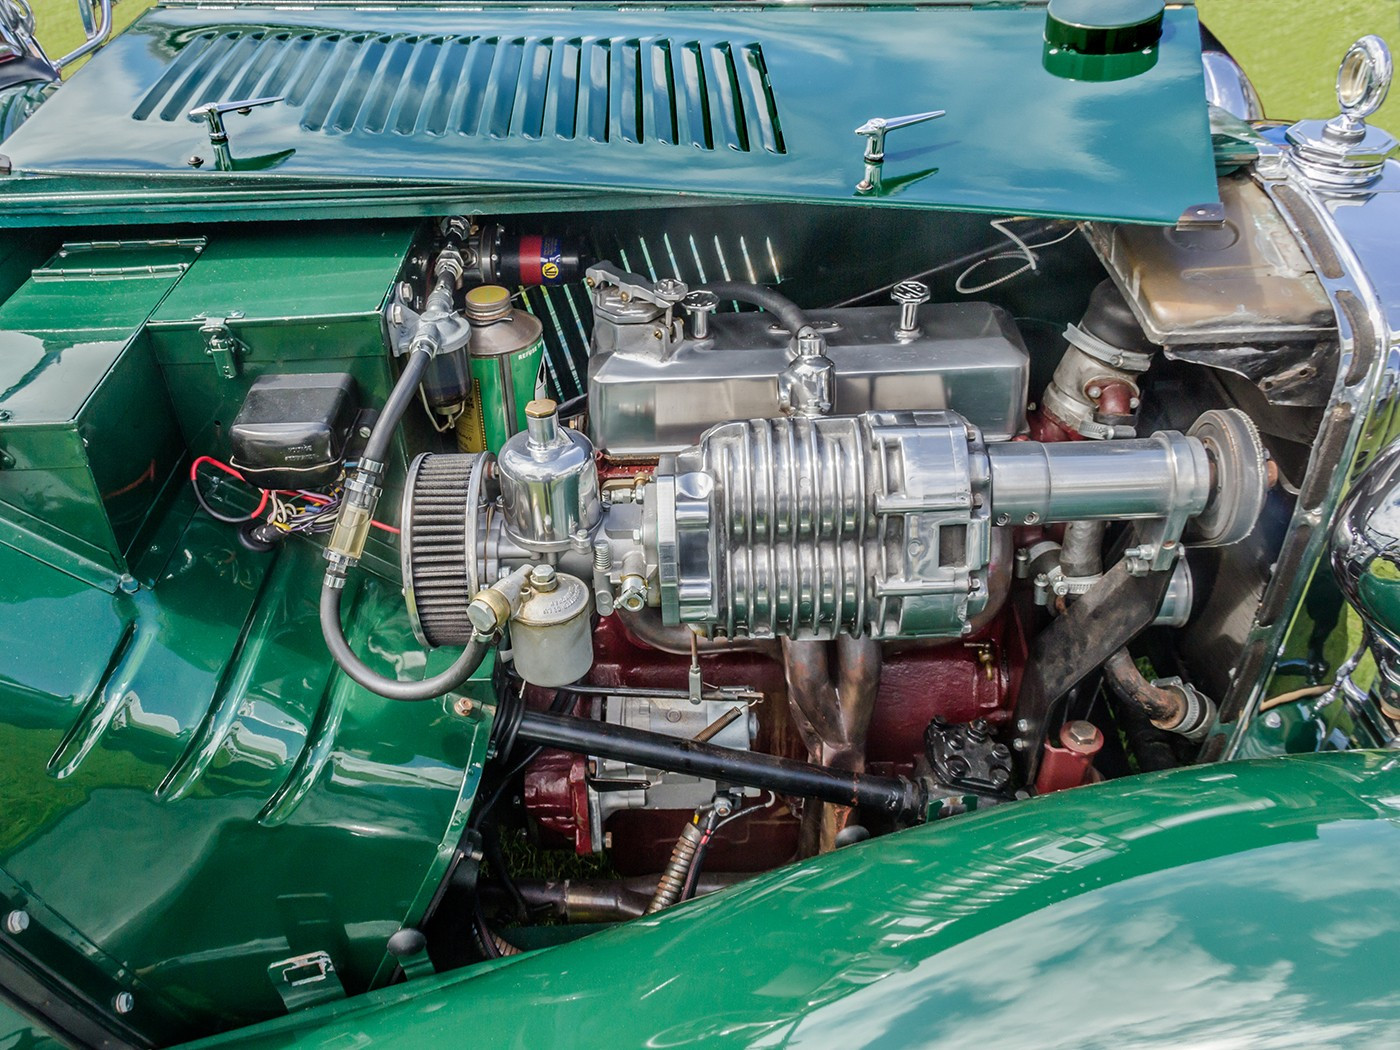 MG Classic car engine